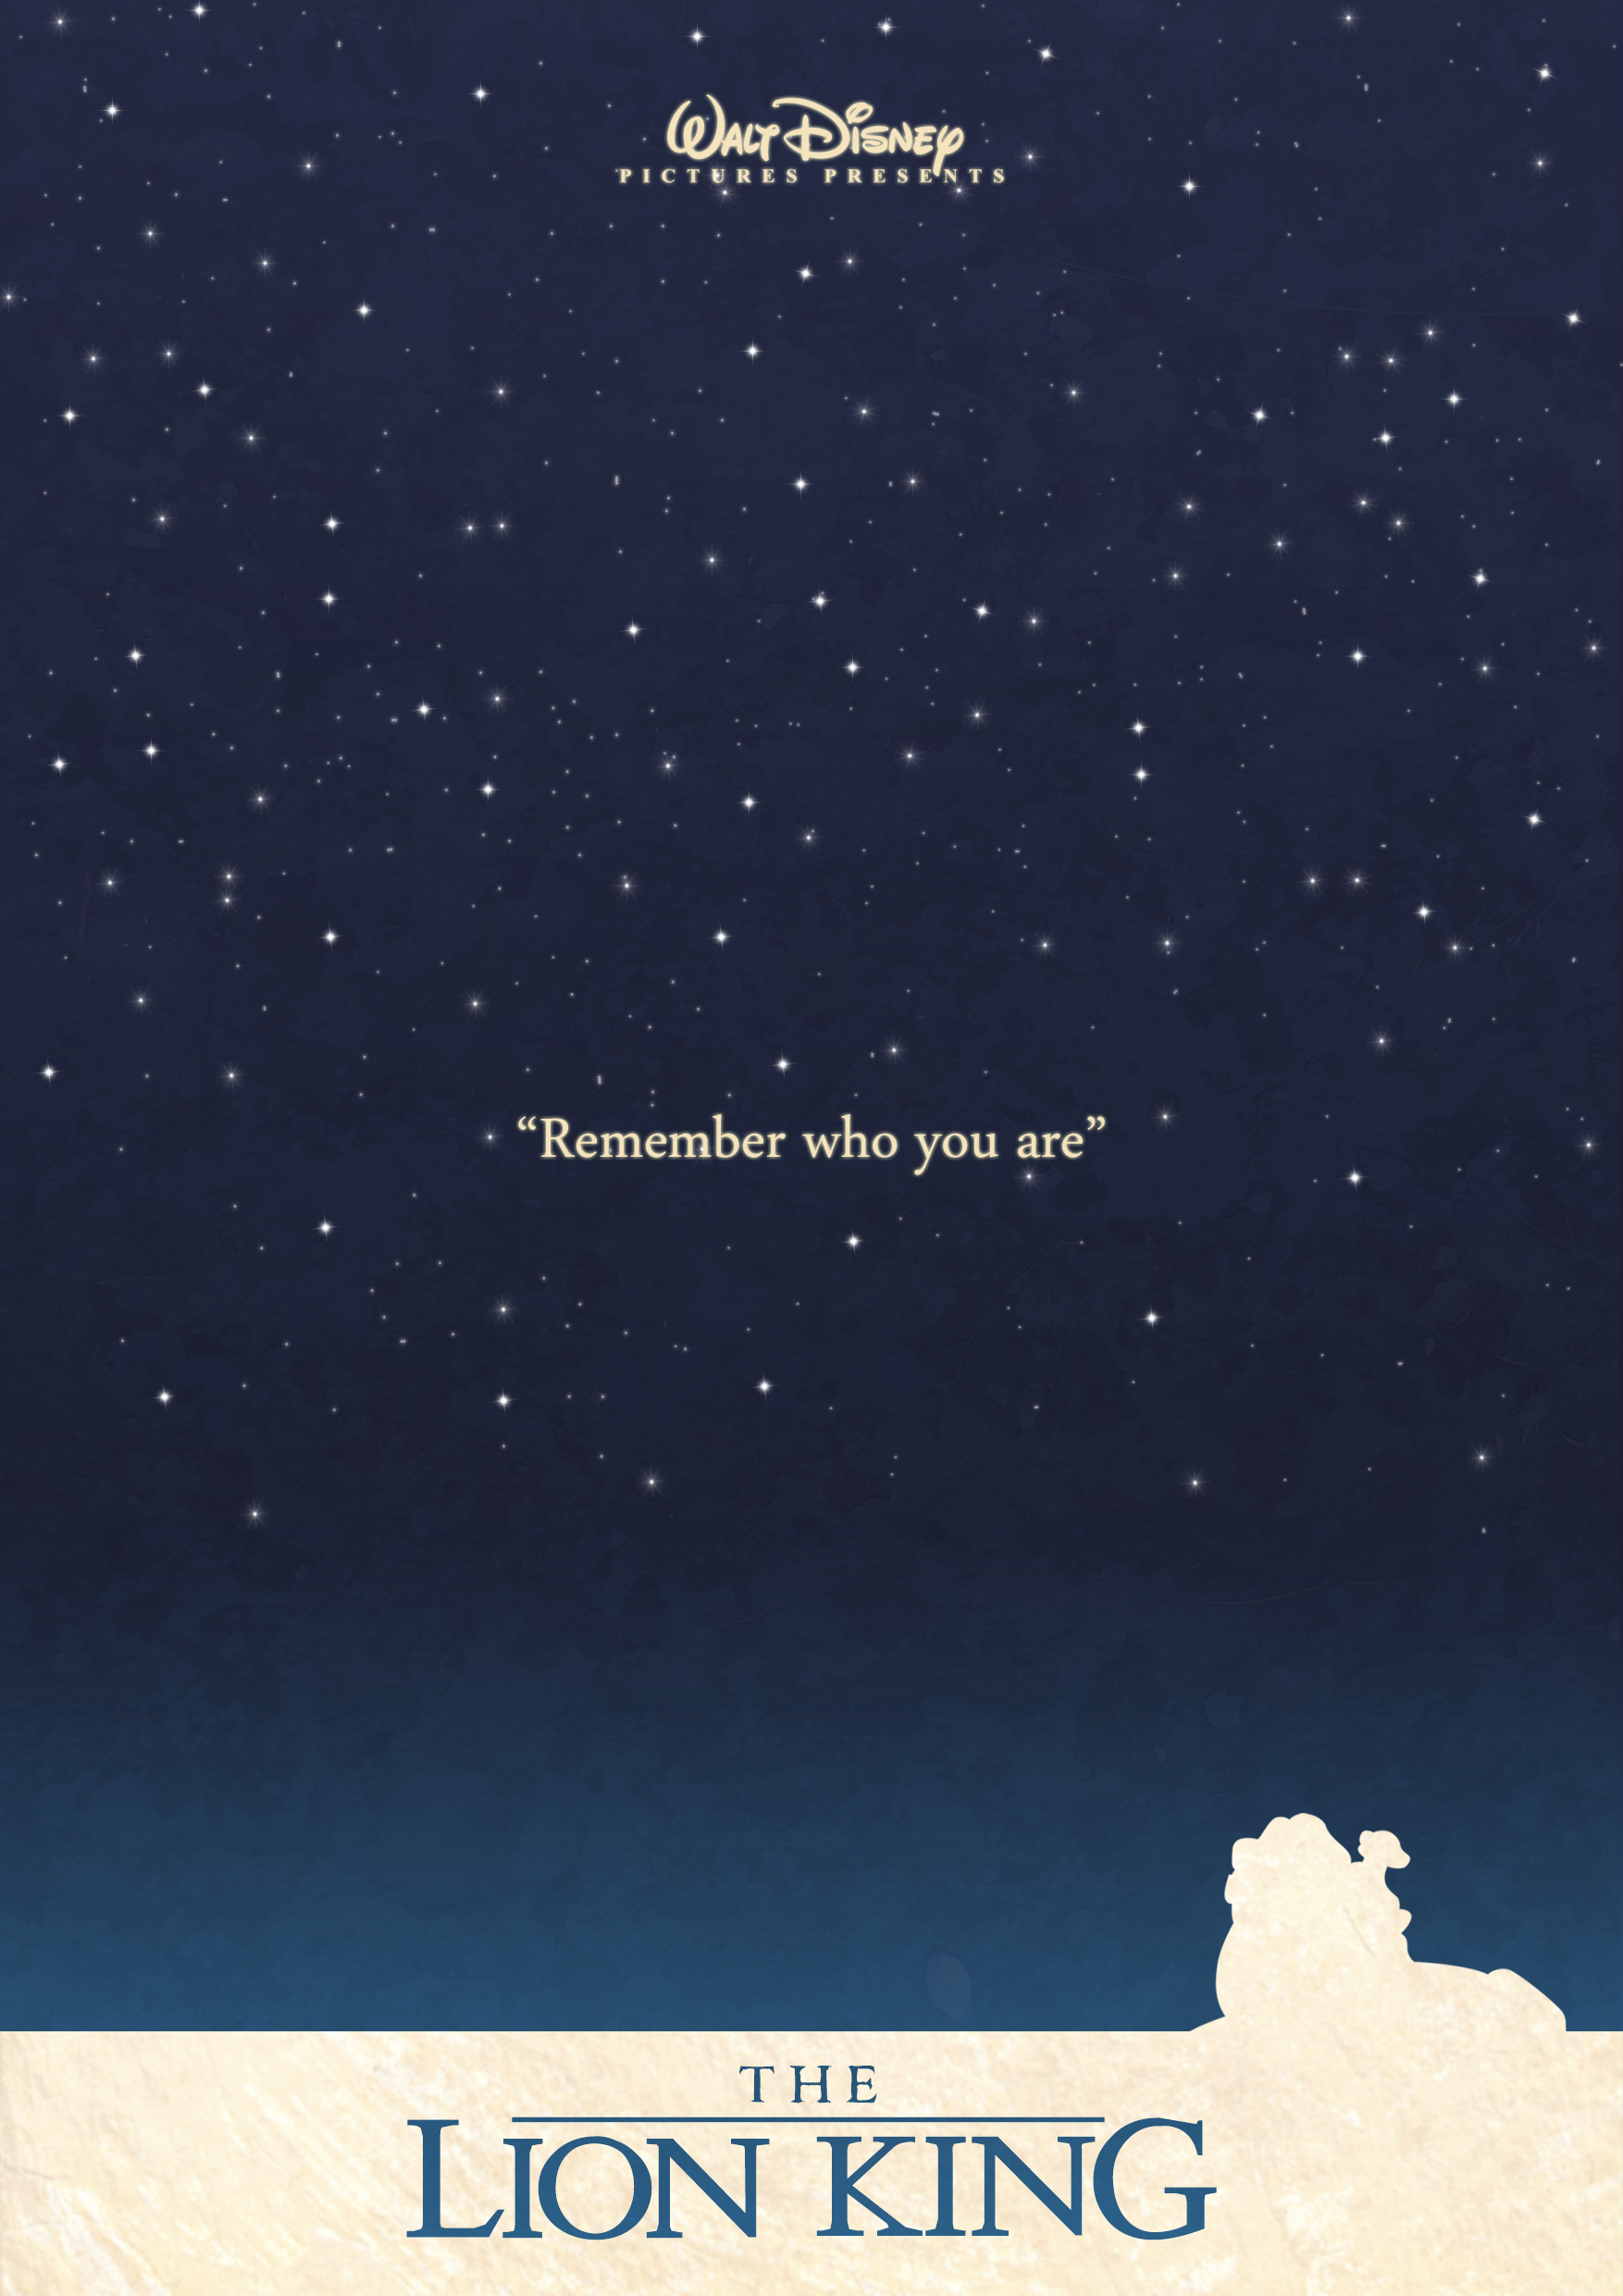 Lion King Minimal Poster By Sindorman On Deviantart Lion King Disney Posters Movie Posters